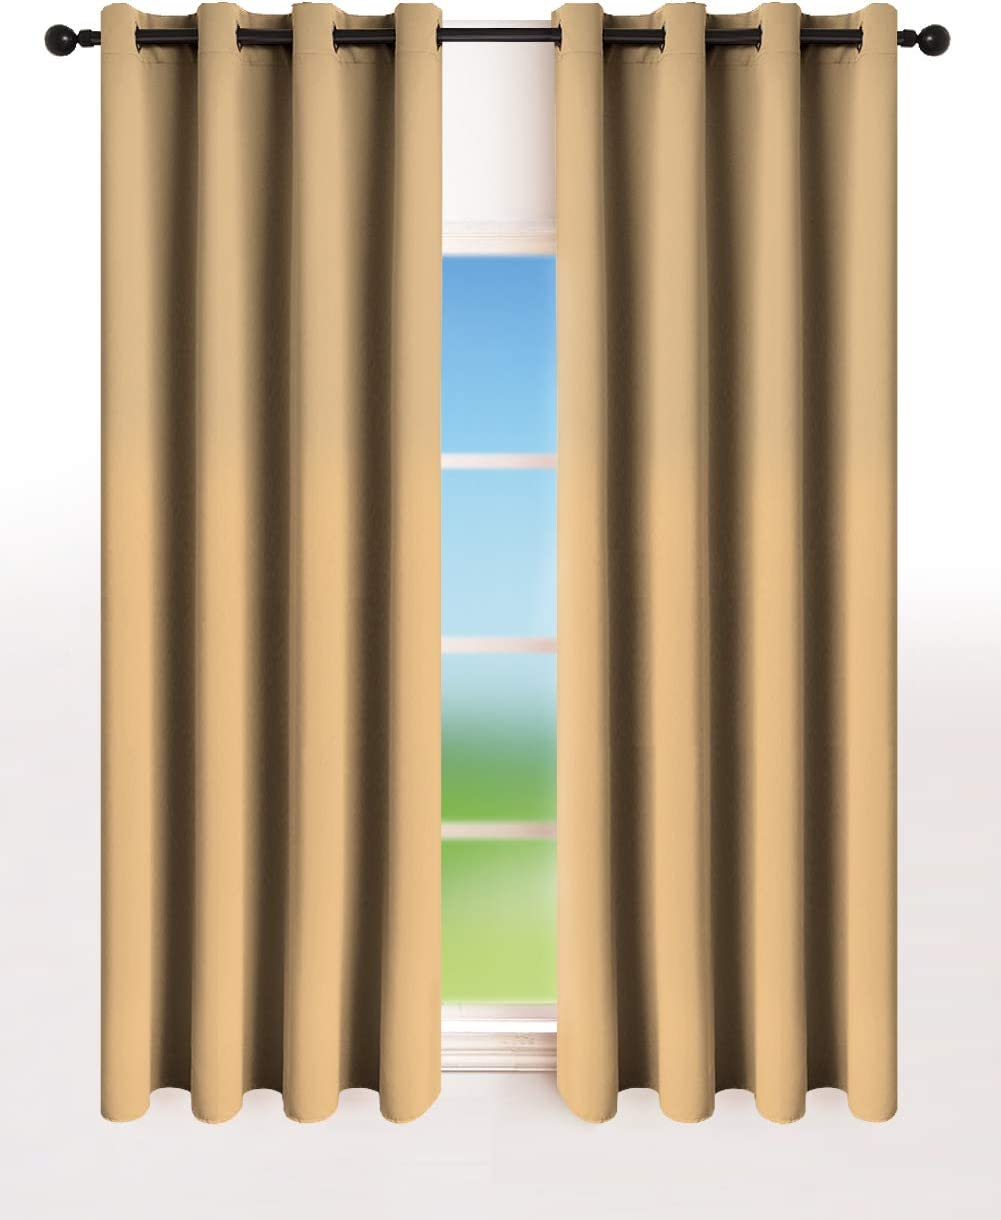 Kinryb Blackout Curtains Panels with Grommets , Room Darkening Thermal Insulated Drapes for Living Room and Bedroom (Set of 2 Panels , 52 by 72 Inches , Beige)